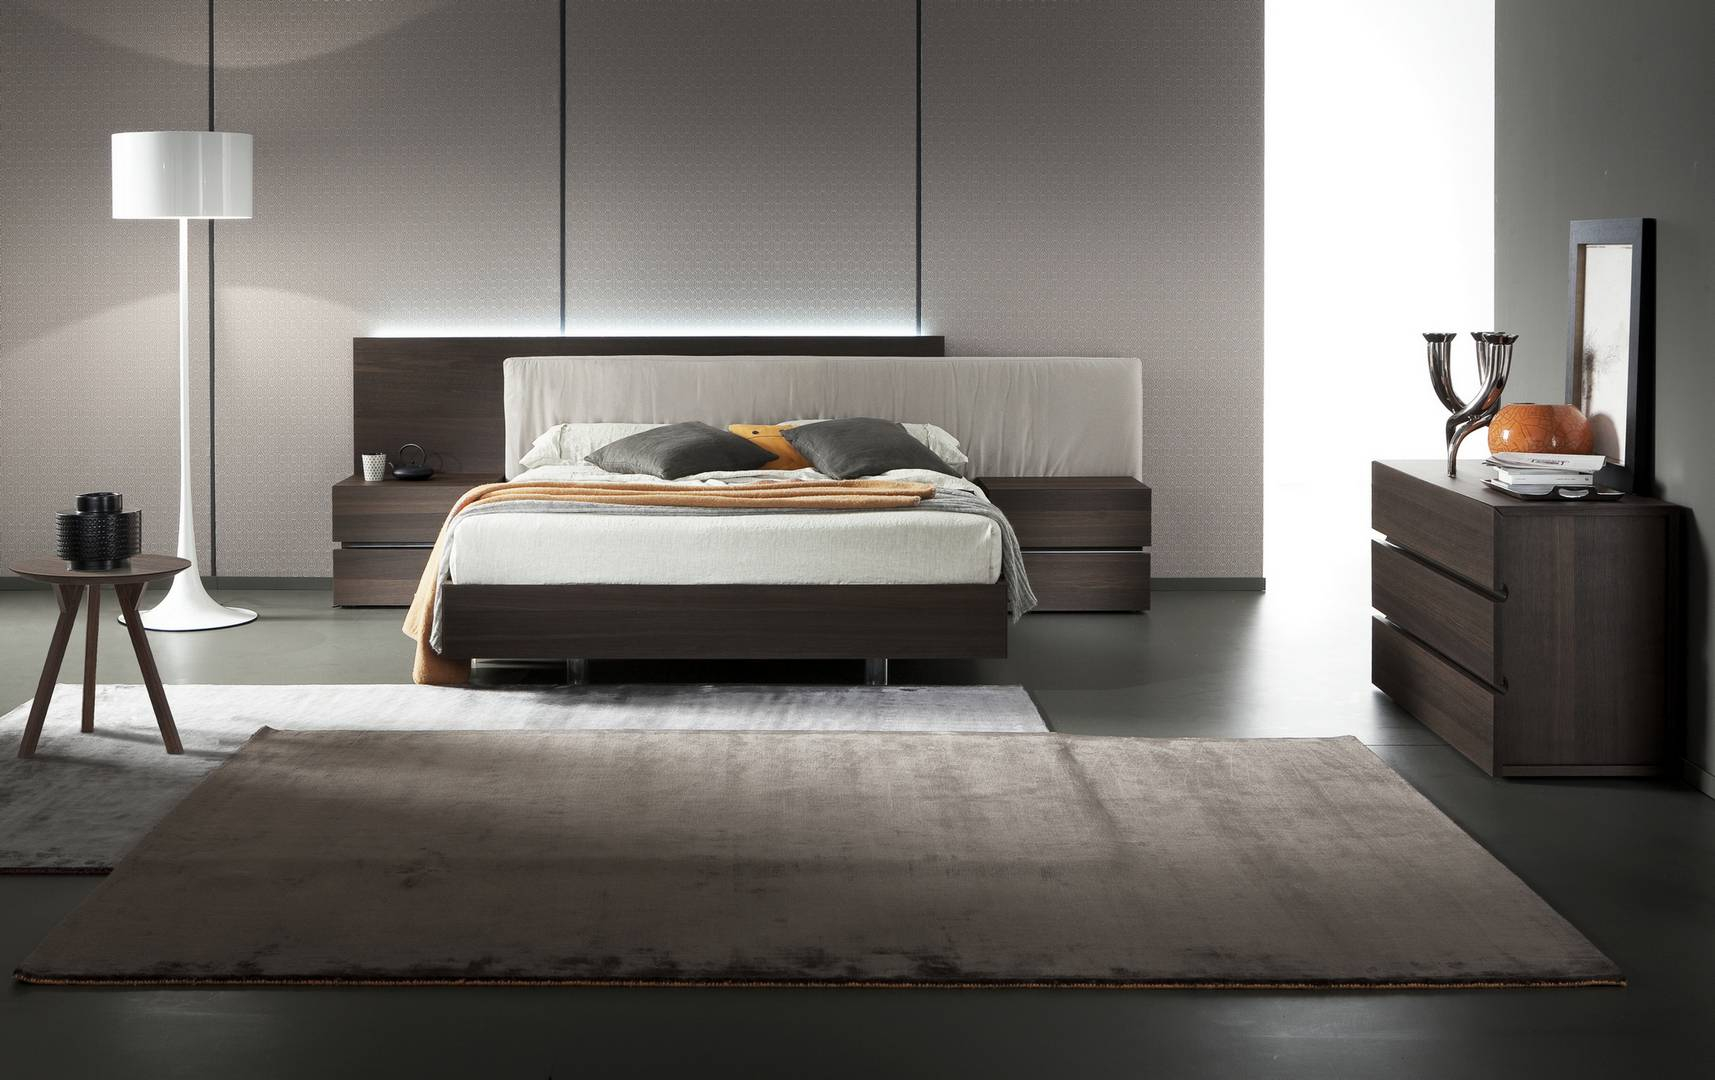 Made In Italy Wood Modern Contemporary Bedroom Sets San Diego intended for 12 Clever Ways How to Upgrade Modern Wood Bedroom